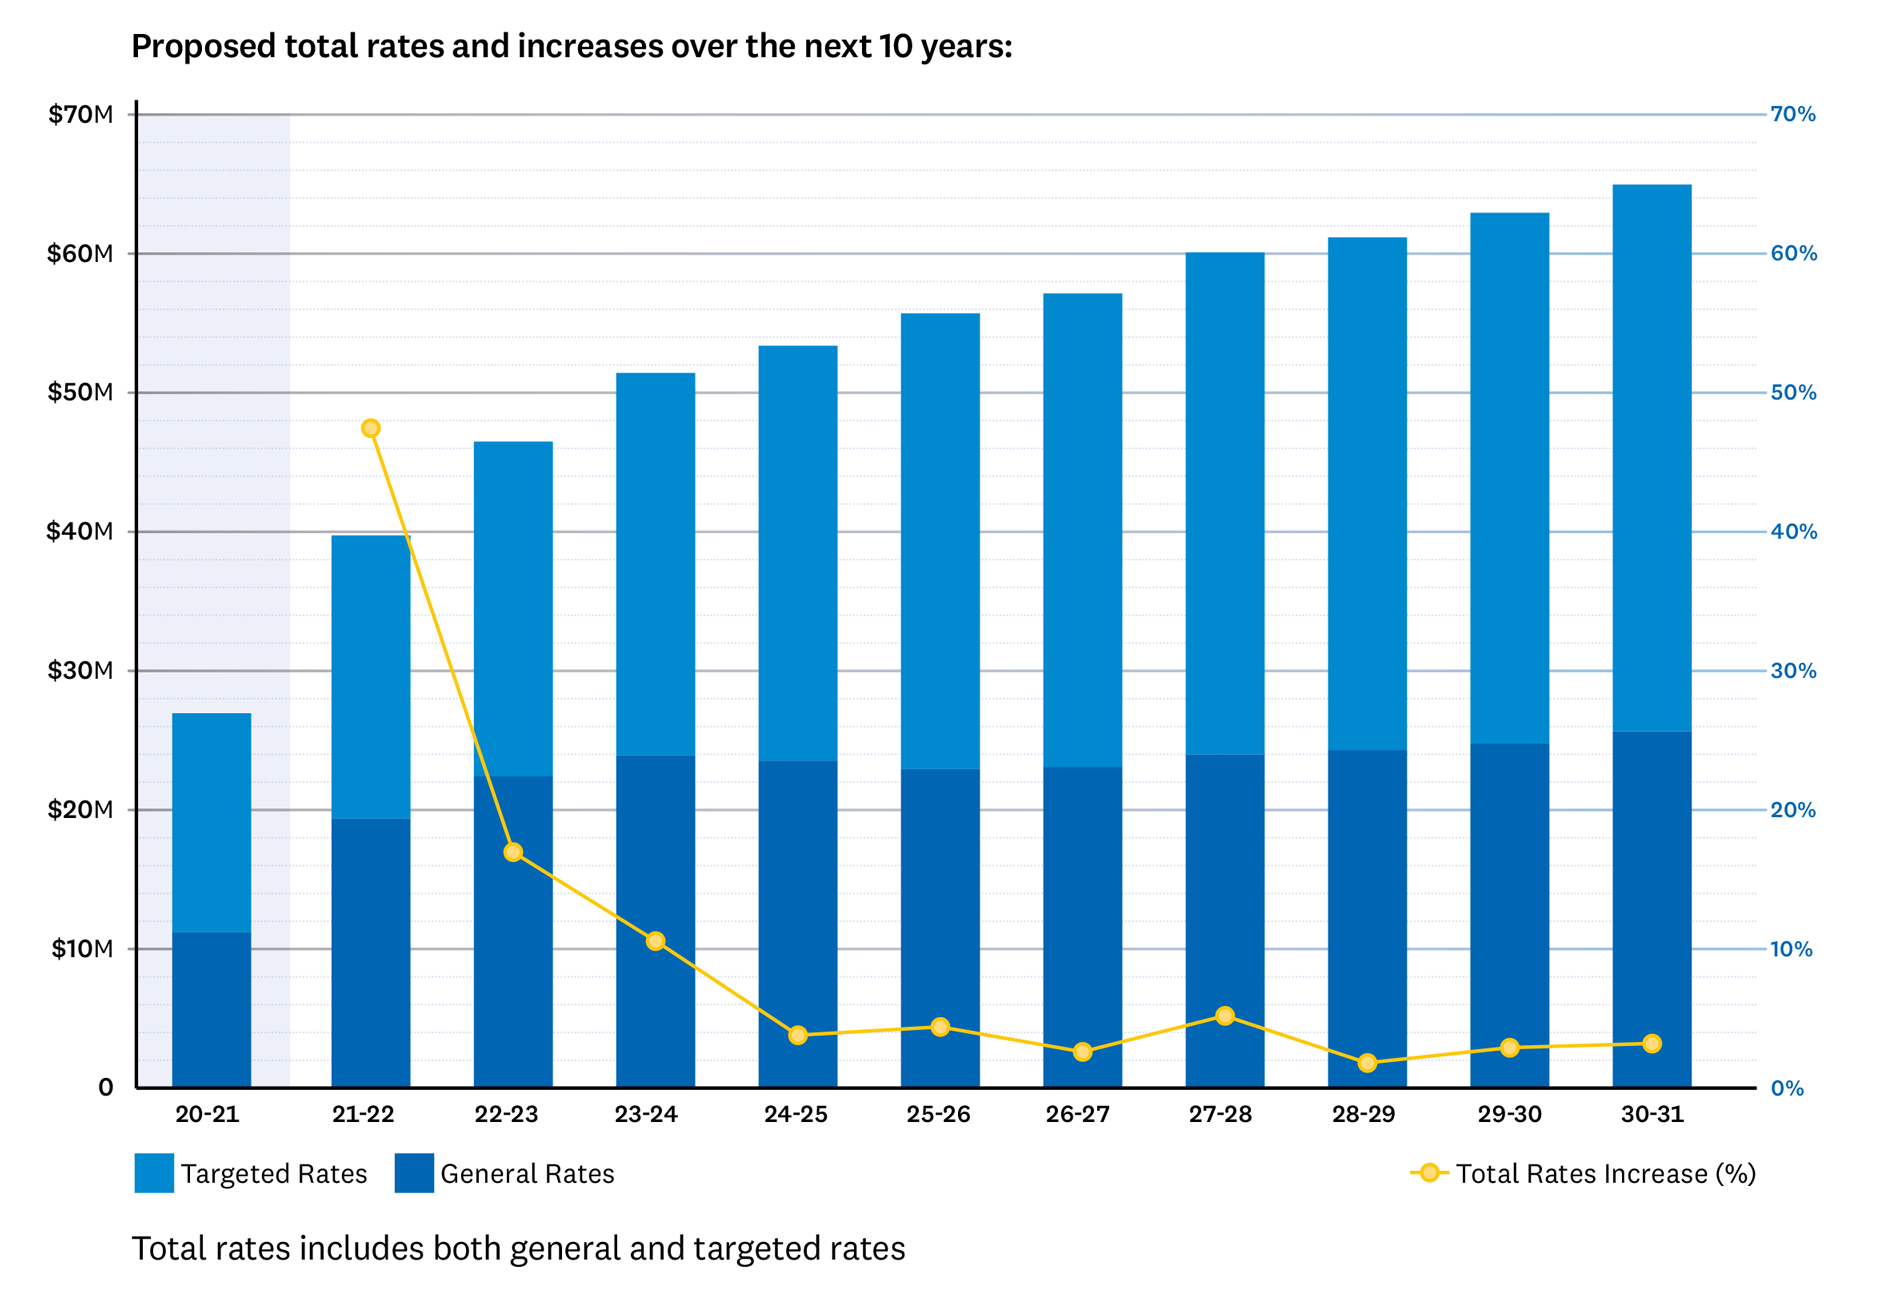 Graph showing the proposed total rates and increases over the next 10 years under option 1. In year 1 it shows an average rates increase of 47.5% or total rates charged being $39,762,000, comprising of $19,364,000 in general rates and $20,398,000 in targeted rates. Year 2 shows an average rates increase of 17% or total rates charged being $46,519,000, comprising of $22,407,000 in general rates and $24,112,000 in targeted rates. Year 3 shows an average rates increase of 10.6% or total rates charged being $51,460,000, comprising of $23,920,000 in general rates and $27,539,000 in targeted rates. Year 4 shows an average rates increase of 3.8% or total rates charged being $53,812,000, comprising of $23,847,000 in general rates and $29,965,000 in targeted rates. Year 5 shows an average rates increase of 4.4% or total rates charged being $56,155,000, comprising of $23,248,000 in general rates and $32,908,000 in targeted rates. Year 6 shows an average rates increase of 2.6% or total rates charged being $57,606,000, comprising of $23,415,000 in general rates and $34,191,000 in targeted rates. Year 7 shows an average rates increase of 5.2% or total rates charged being $60,575,000, comprising of $24,316,000 in general rates and $36,259,000 in targeted rates. Year 8 shows an average rates increase of 1.8% or total rates charged being $61,670,000, comprising of $24,646,000 in general rates and $37,024,000 in targeted rates. Year 9 shows an average rates increase of 2.9% or total rates charged being $63,457,000, comprising of $25,128,000 in general rates and $38,329,000 in targeted rates. Year 10 shows an average rates increase of 3.2% or total rates charged being $65,504,000, comprising of $26,022,000 in general rates and $39,483,000 in targeted rates.